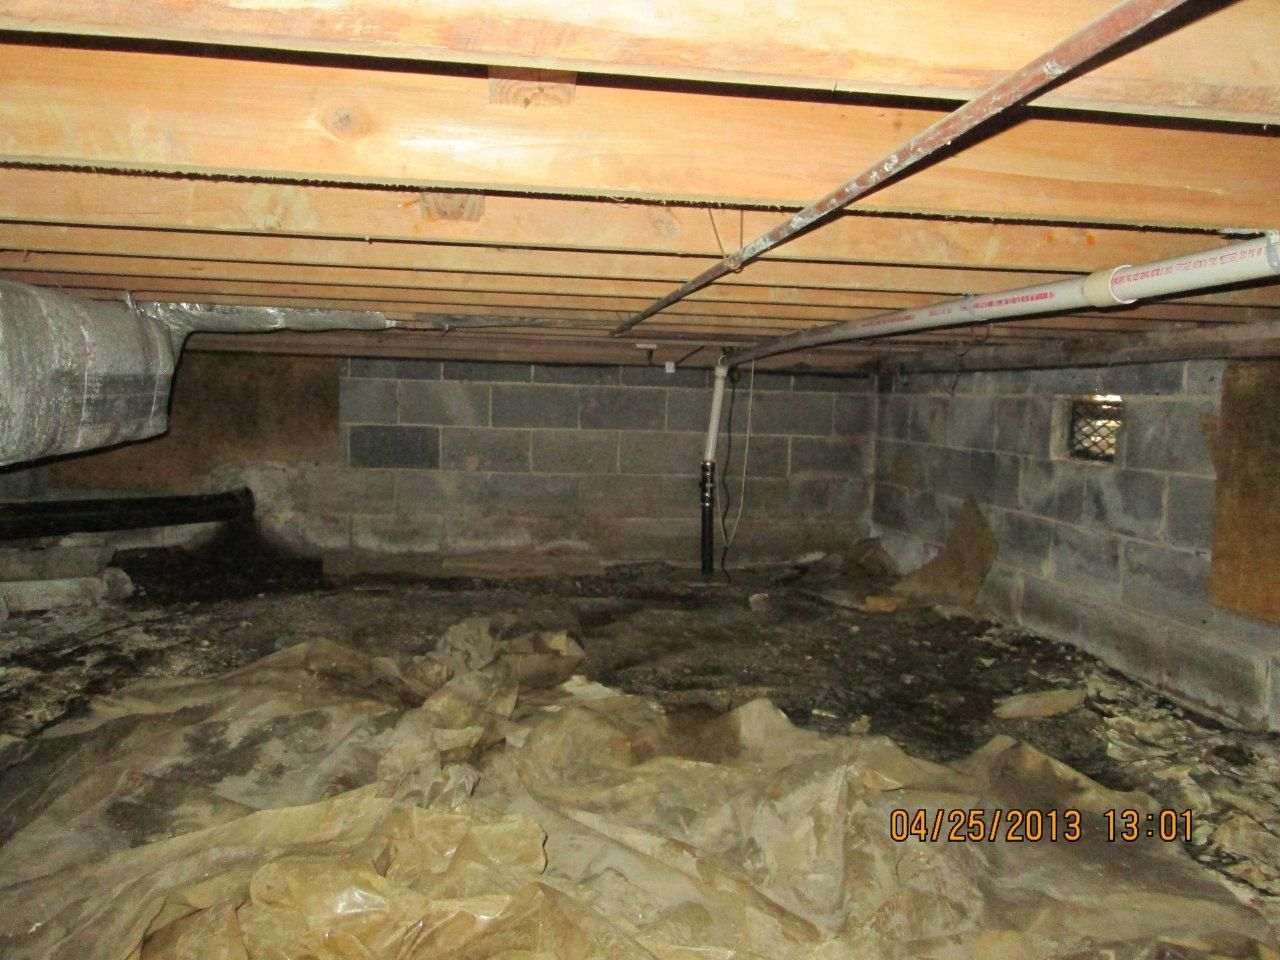 Water damage in crawl spaces can lead to mold and termites ...